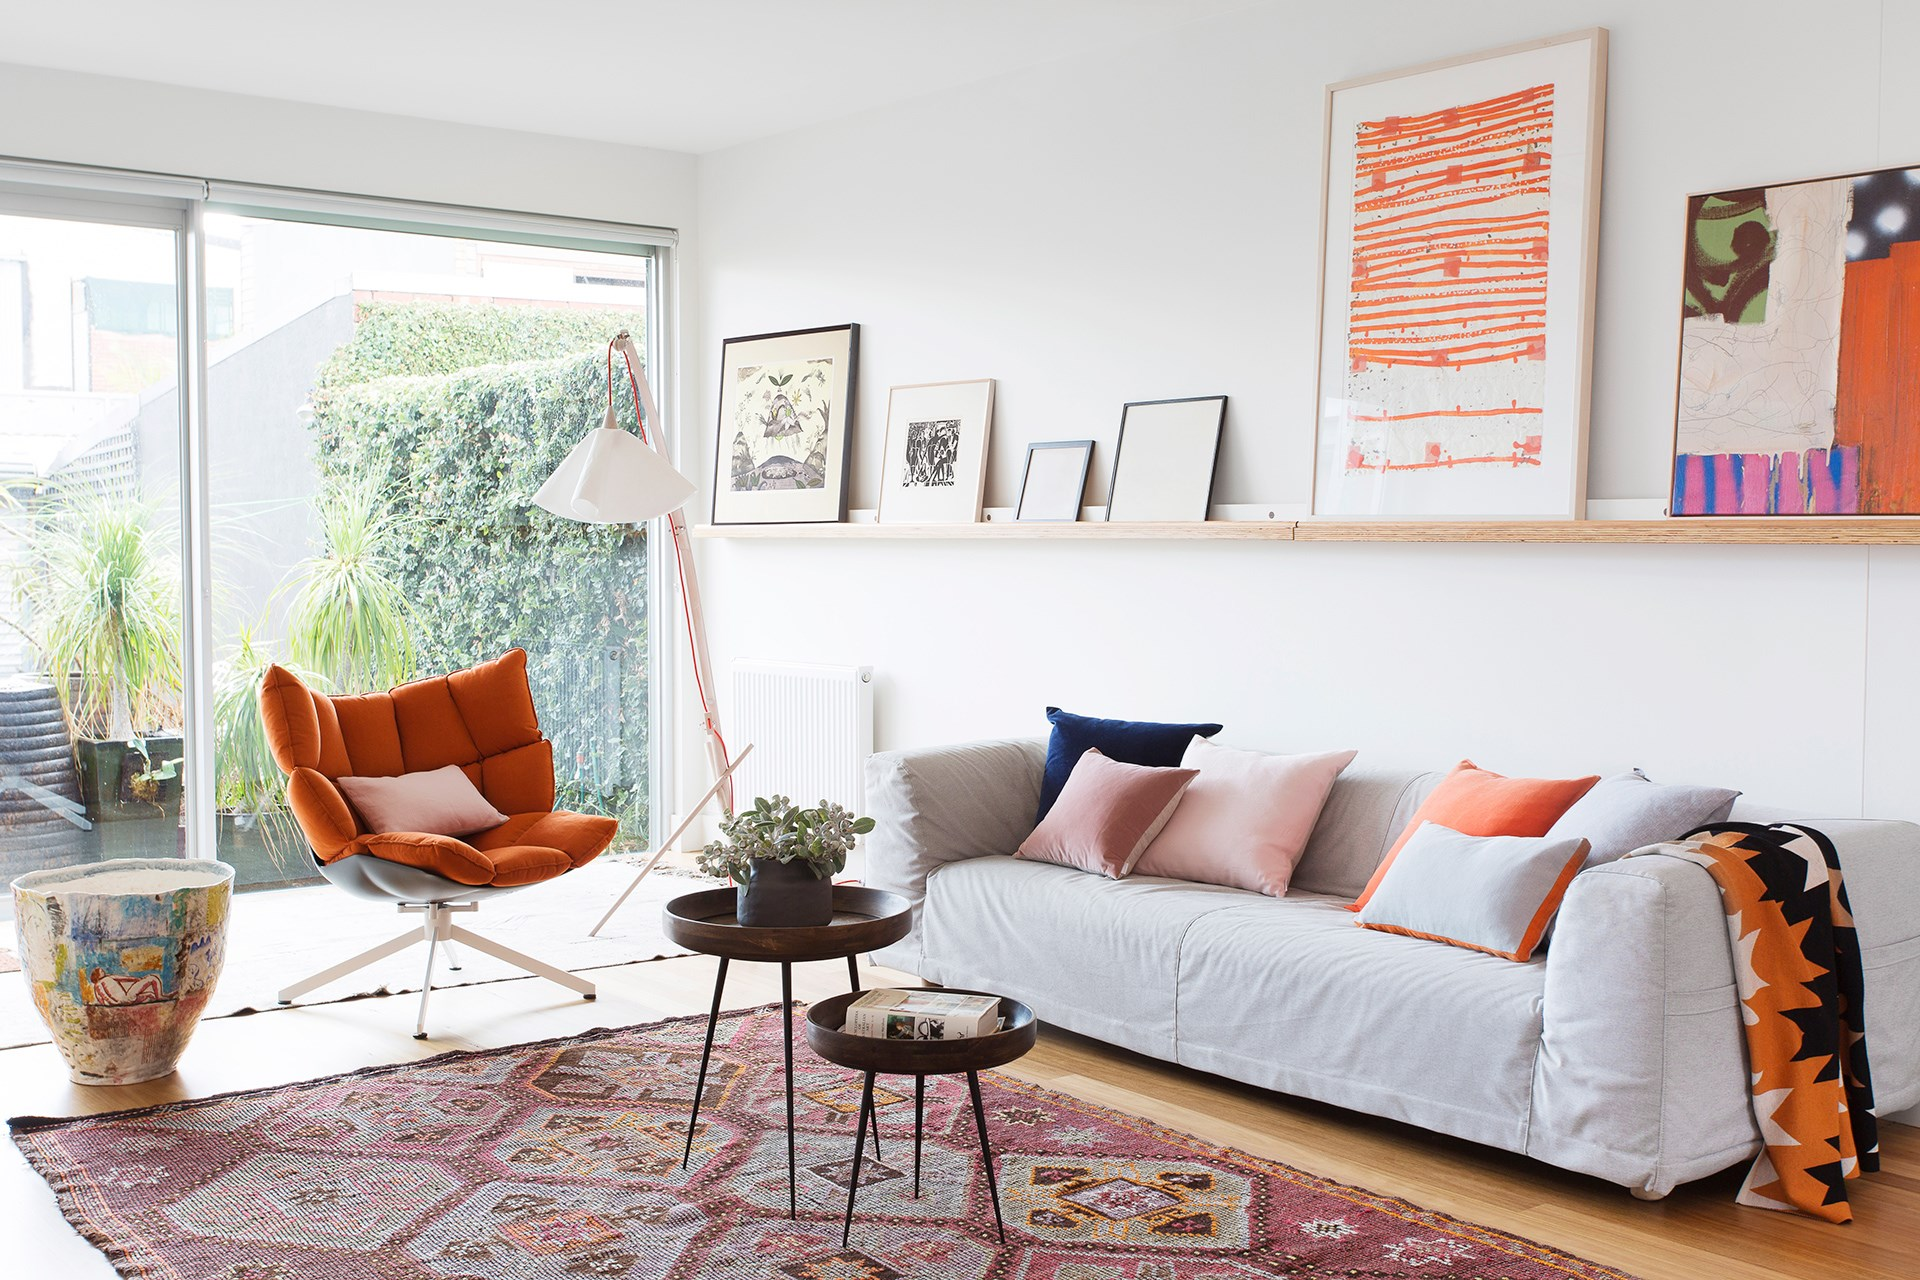 This light-filled living room is brought to life with bursts of burnt orange and terracotta, contrasted perfectly with soft pink and grey for a vibrant yet sophisticated style. [> See the rest of this bespoke Melbourne terrace here.](http://www.homestolove.com.au/bespoke-renovation-of-an-old-victorian-terrace-4456) Photo: Martina Gemmola / Australian House & Garden